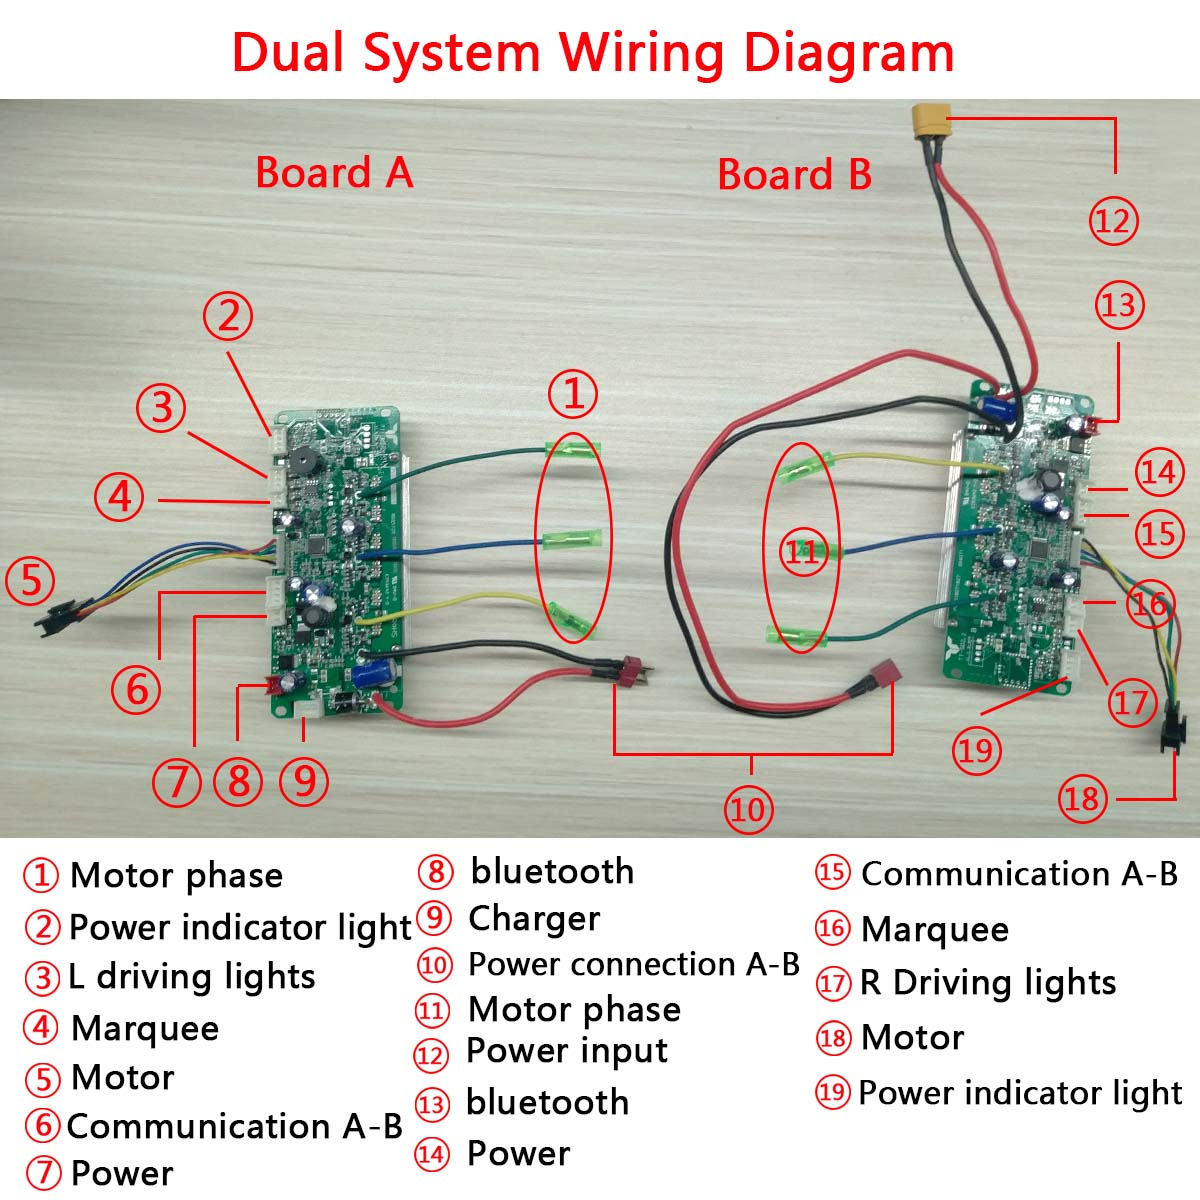 Balance Board Wiring Diagram on motor diagrams, friendship bracelet diagrams, series and parallel circuits diagrams, transformer diagrams, pinout diagrams, battery diagrams, honda motorcycle repair diagrams, led circuit diagrams, gmc fuse box diagrams, sincgars radio configurations diagrams, electrical diagrams, electronic circuit diagrams, smart car diagrams, hvac diagrams, switch diagrams, lighting diagrams, internet of things diagrams, engine diagrams, troubleshooting diagrams,